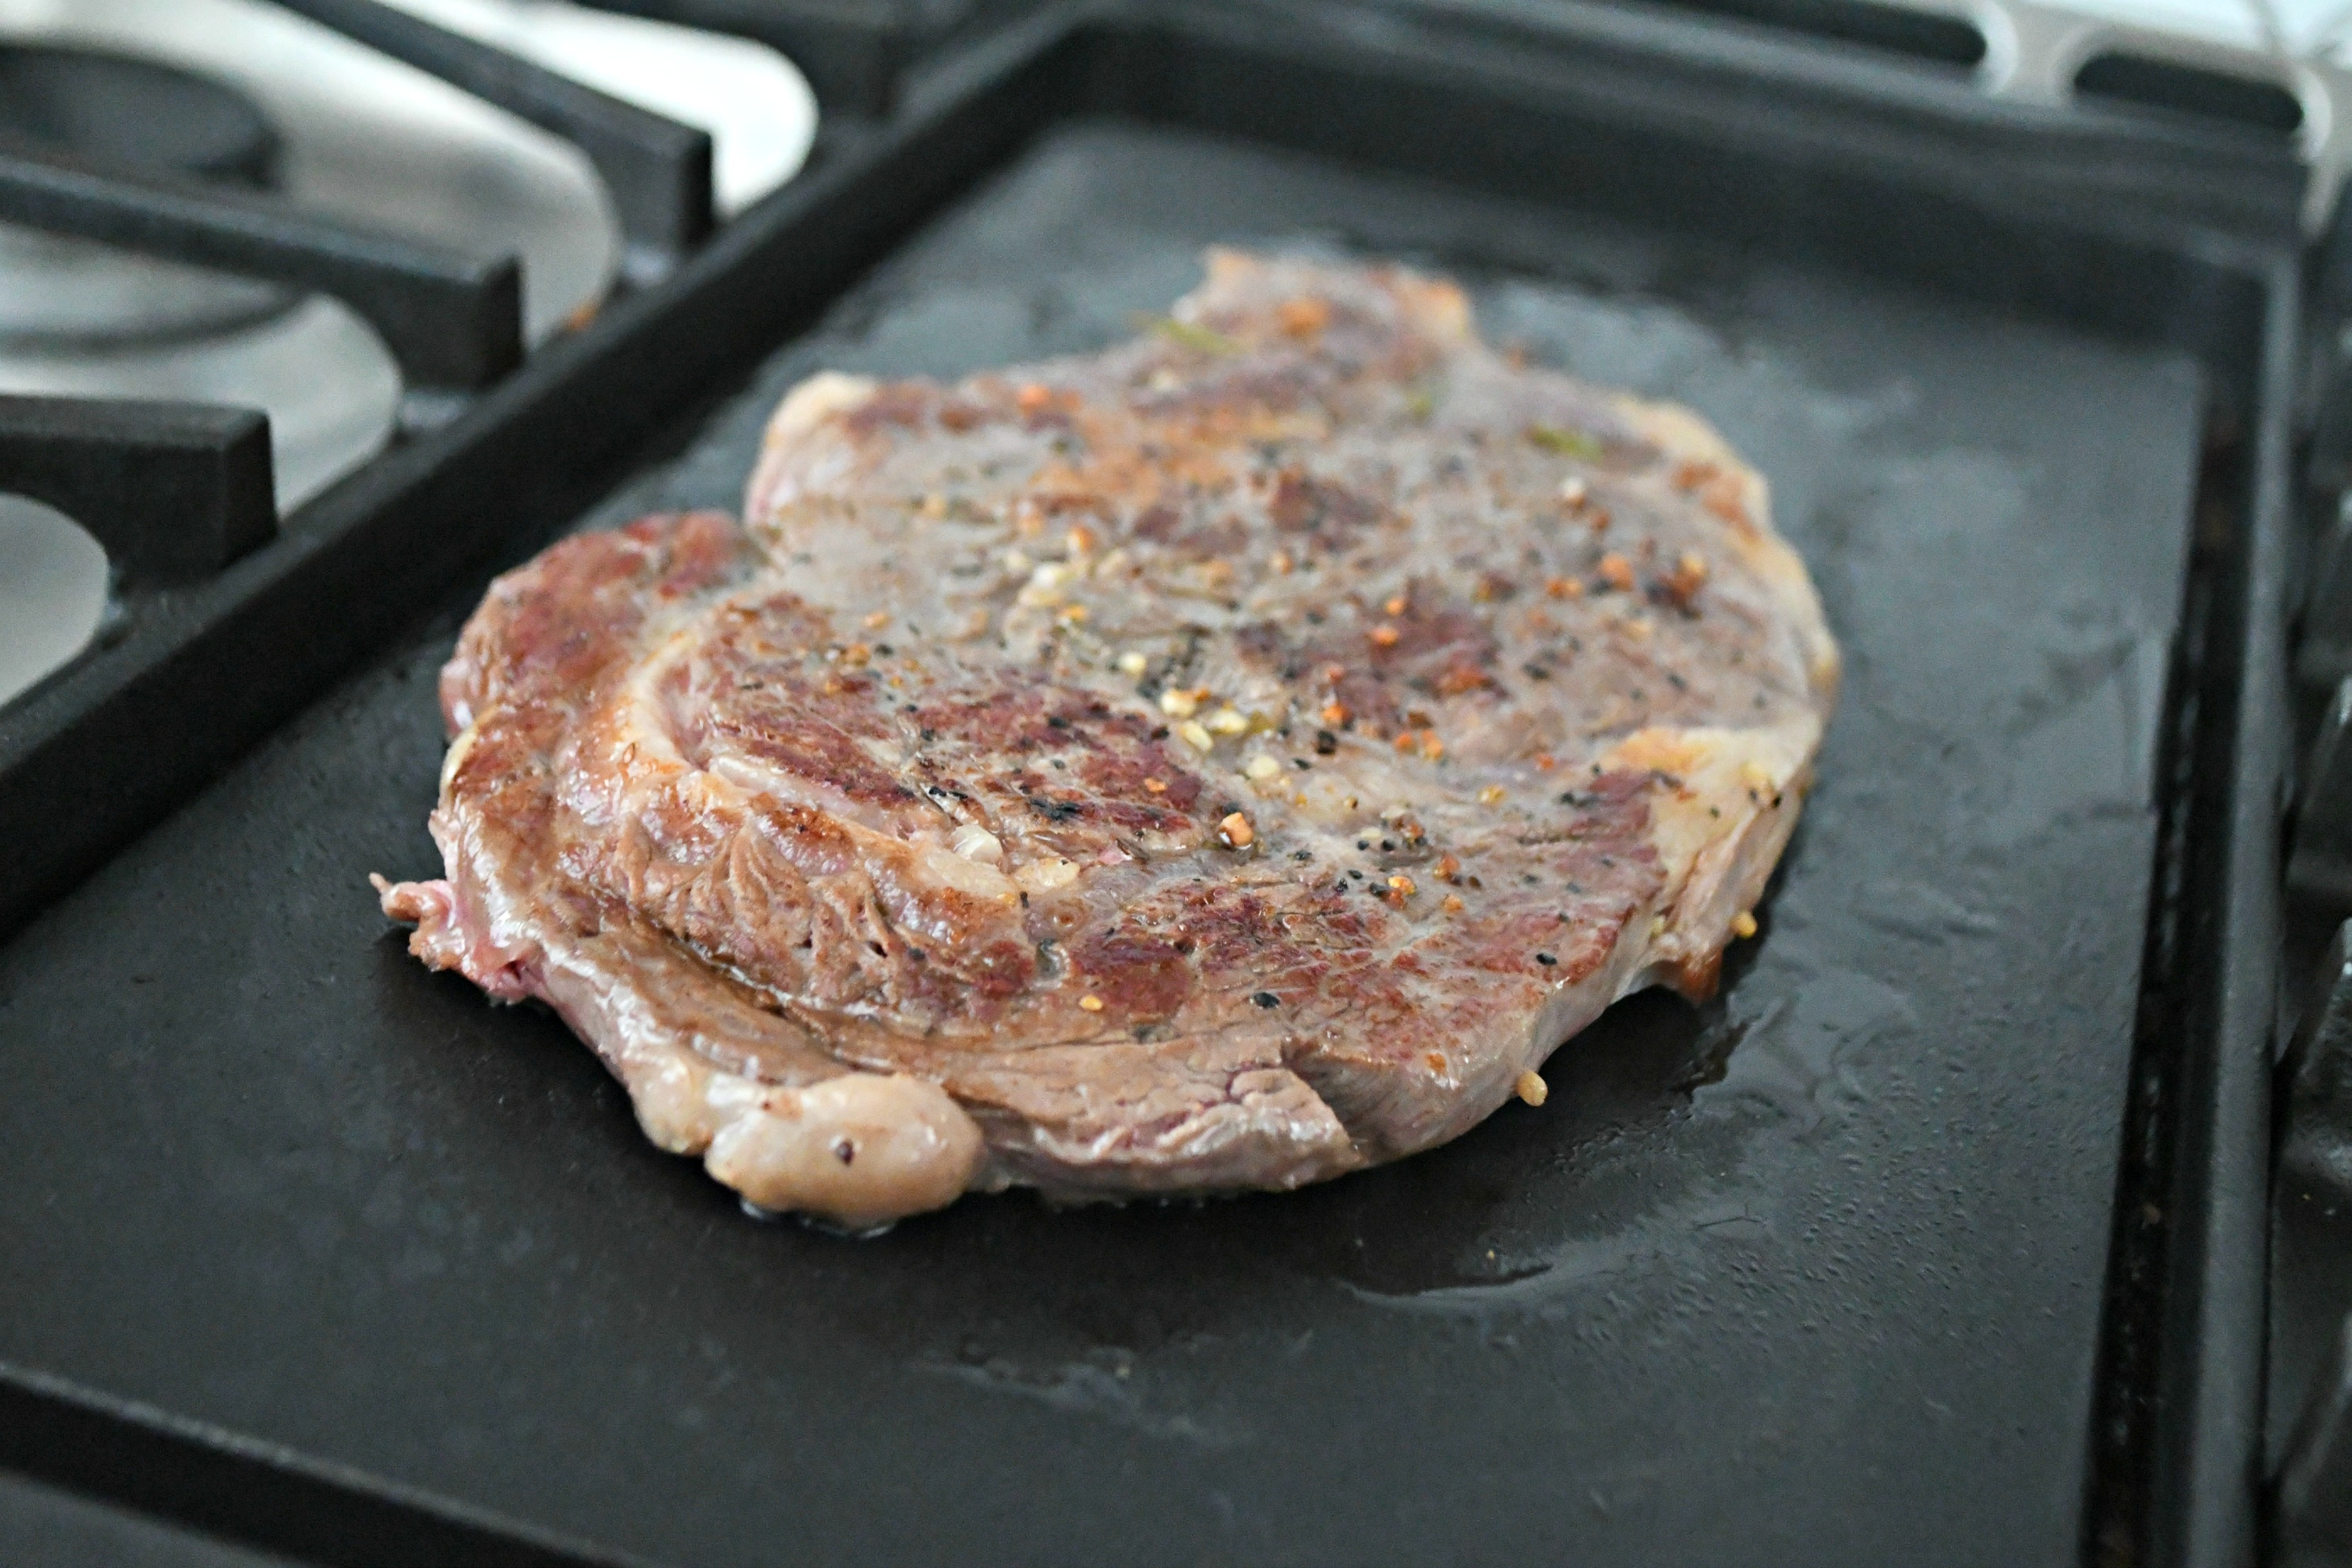 Make the Best Steak Using the Sous Vide method and then sear the steak to finish